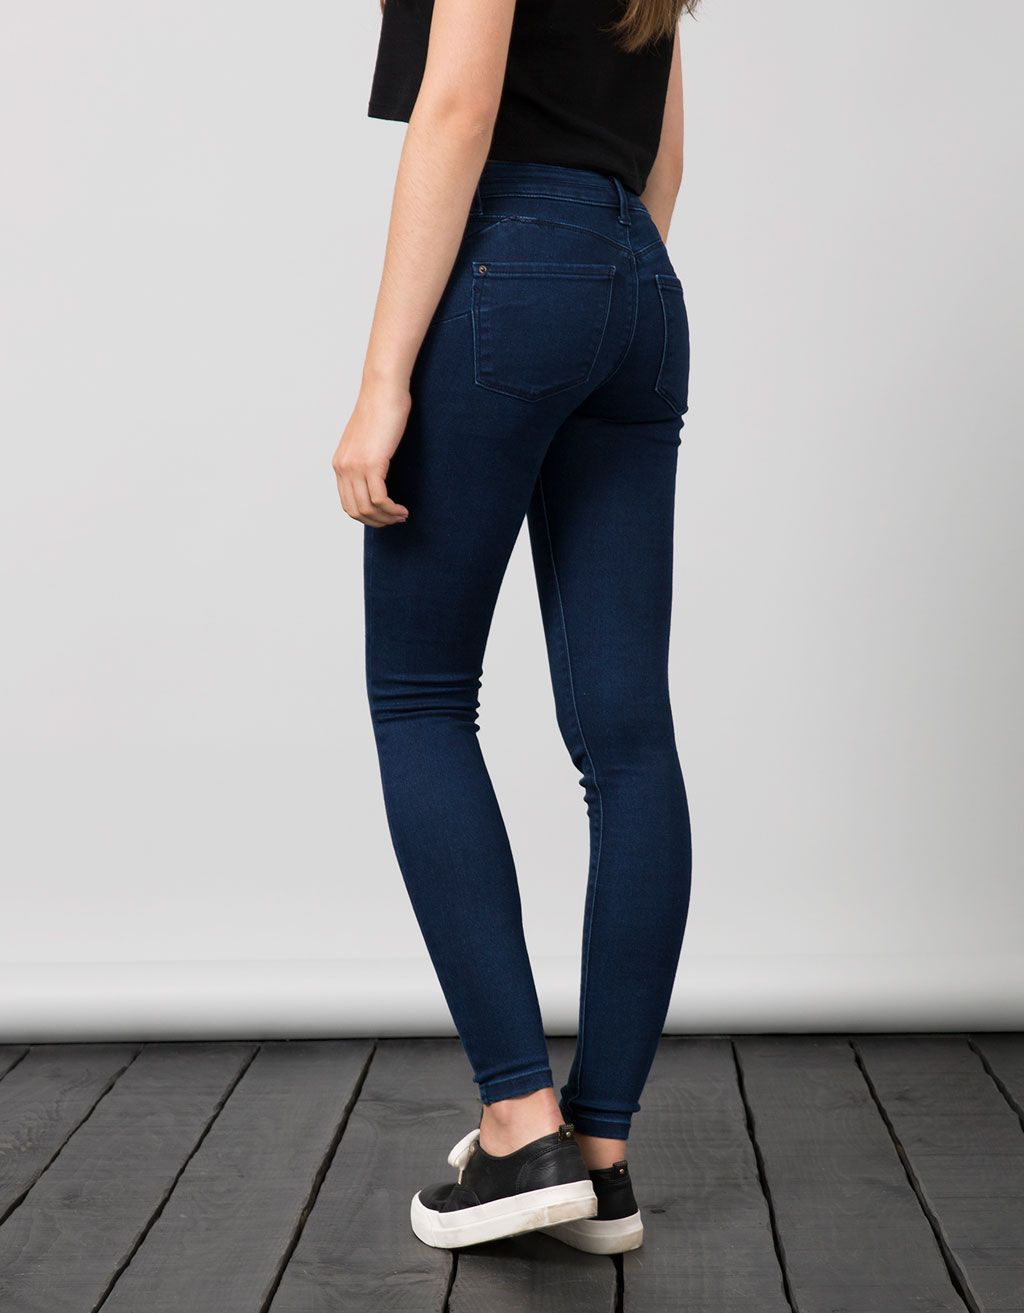 14757e53f42 BSK push up jeans | Wishlist | Jeans, Outfits, Girls jeans